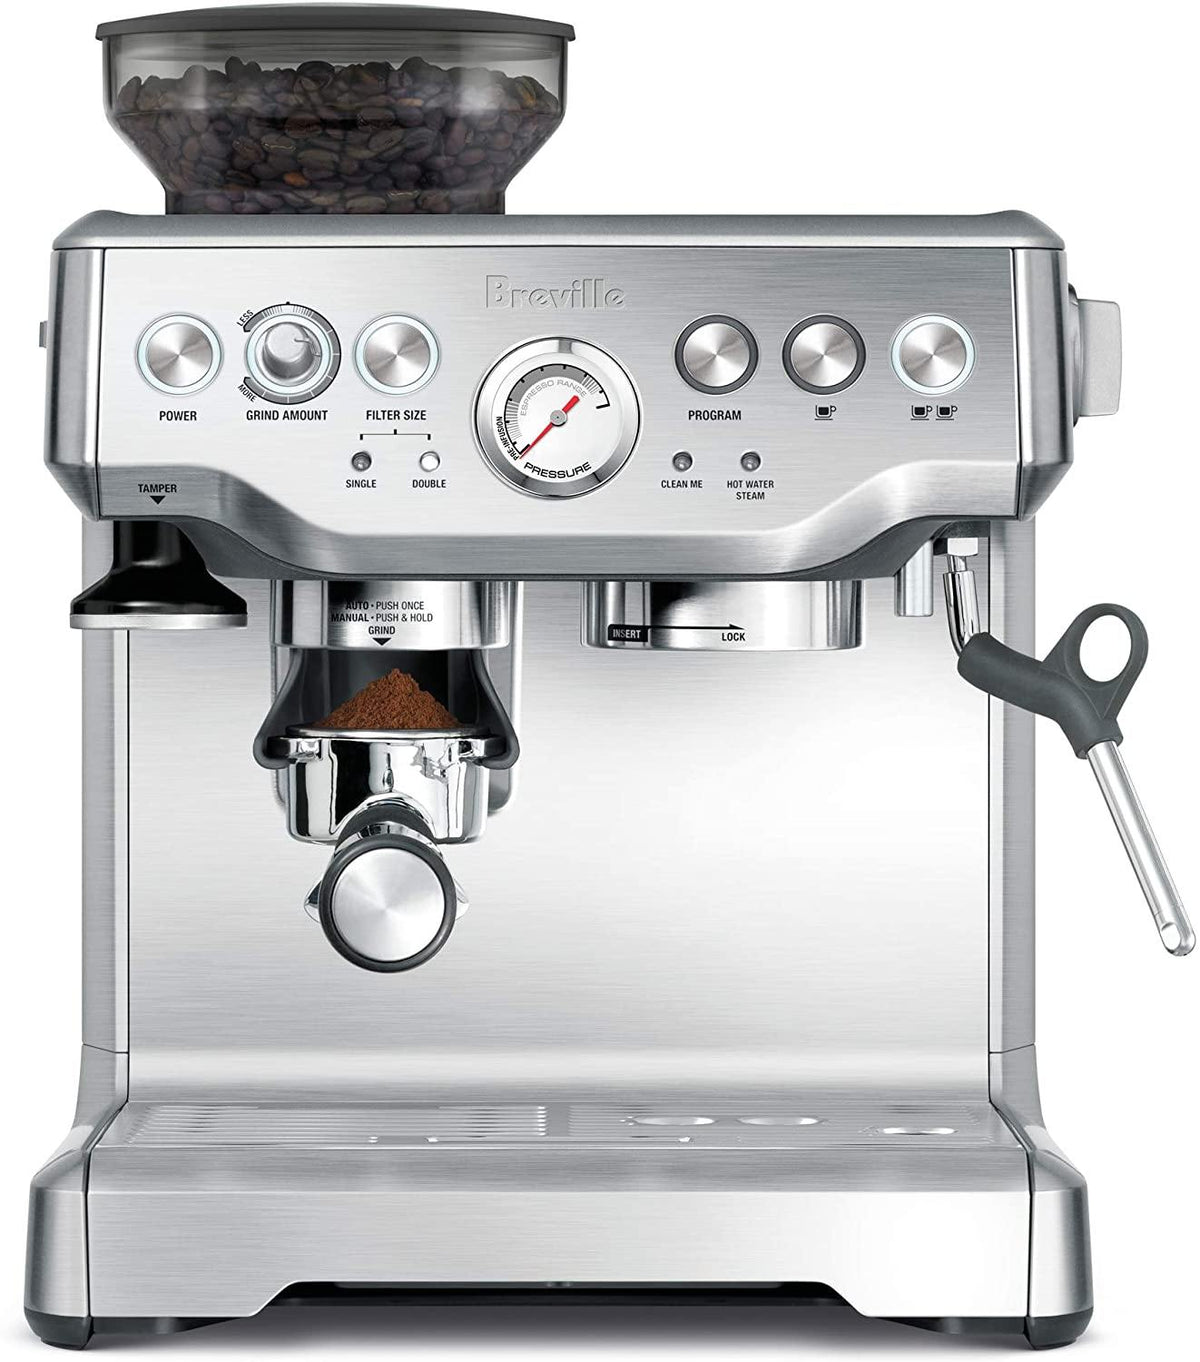 Breville the Barista Express Espresso Machine, BES870XL - Bean Hoppers